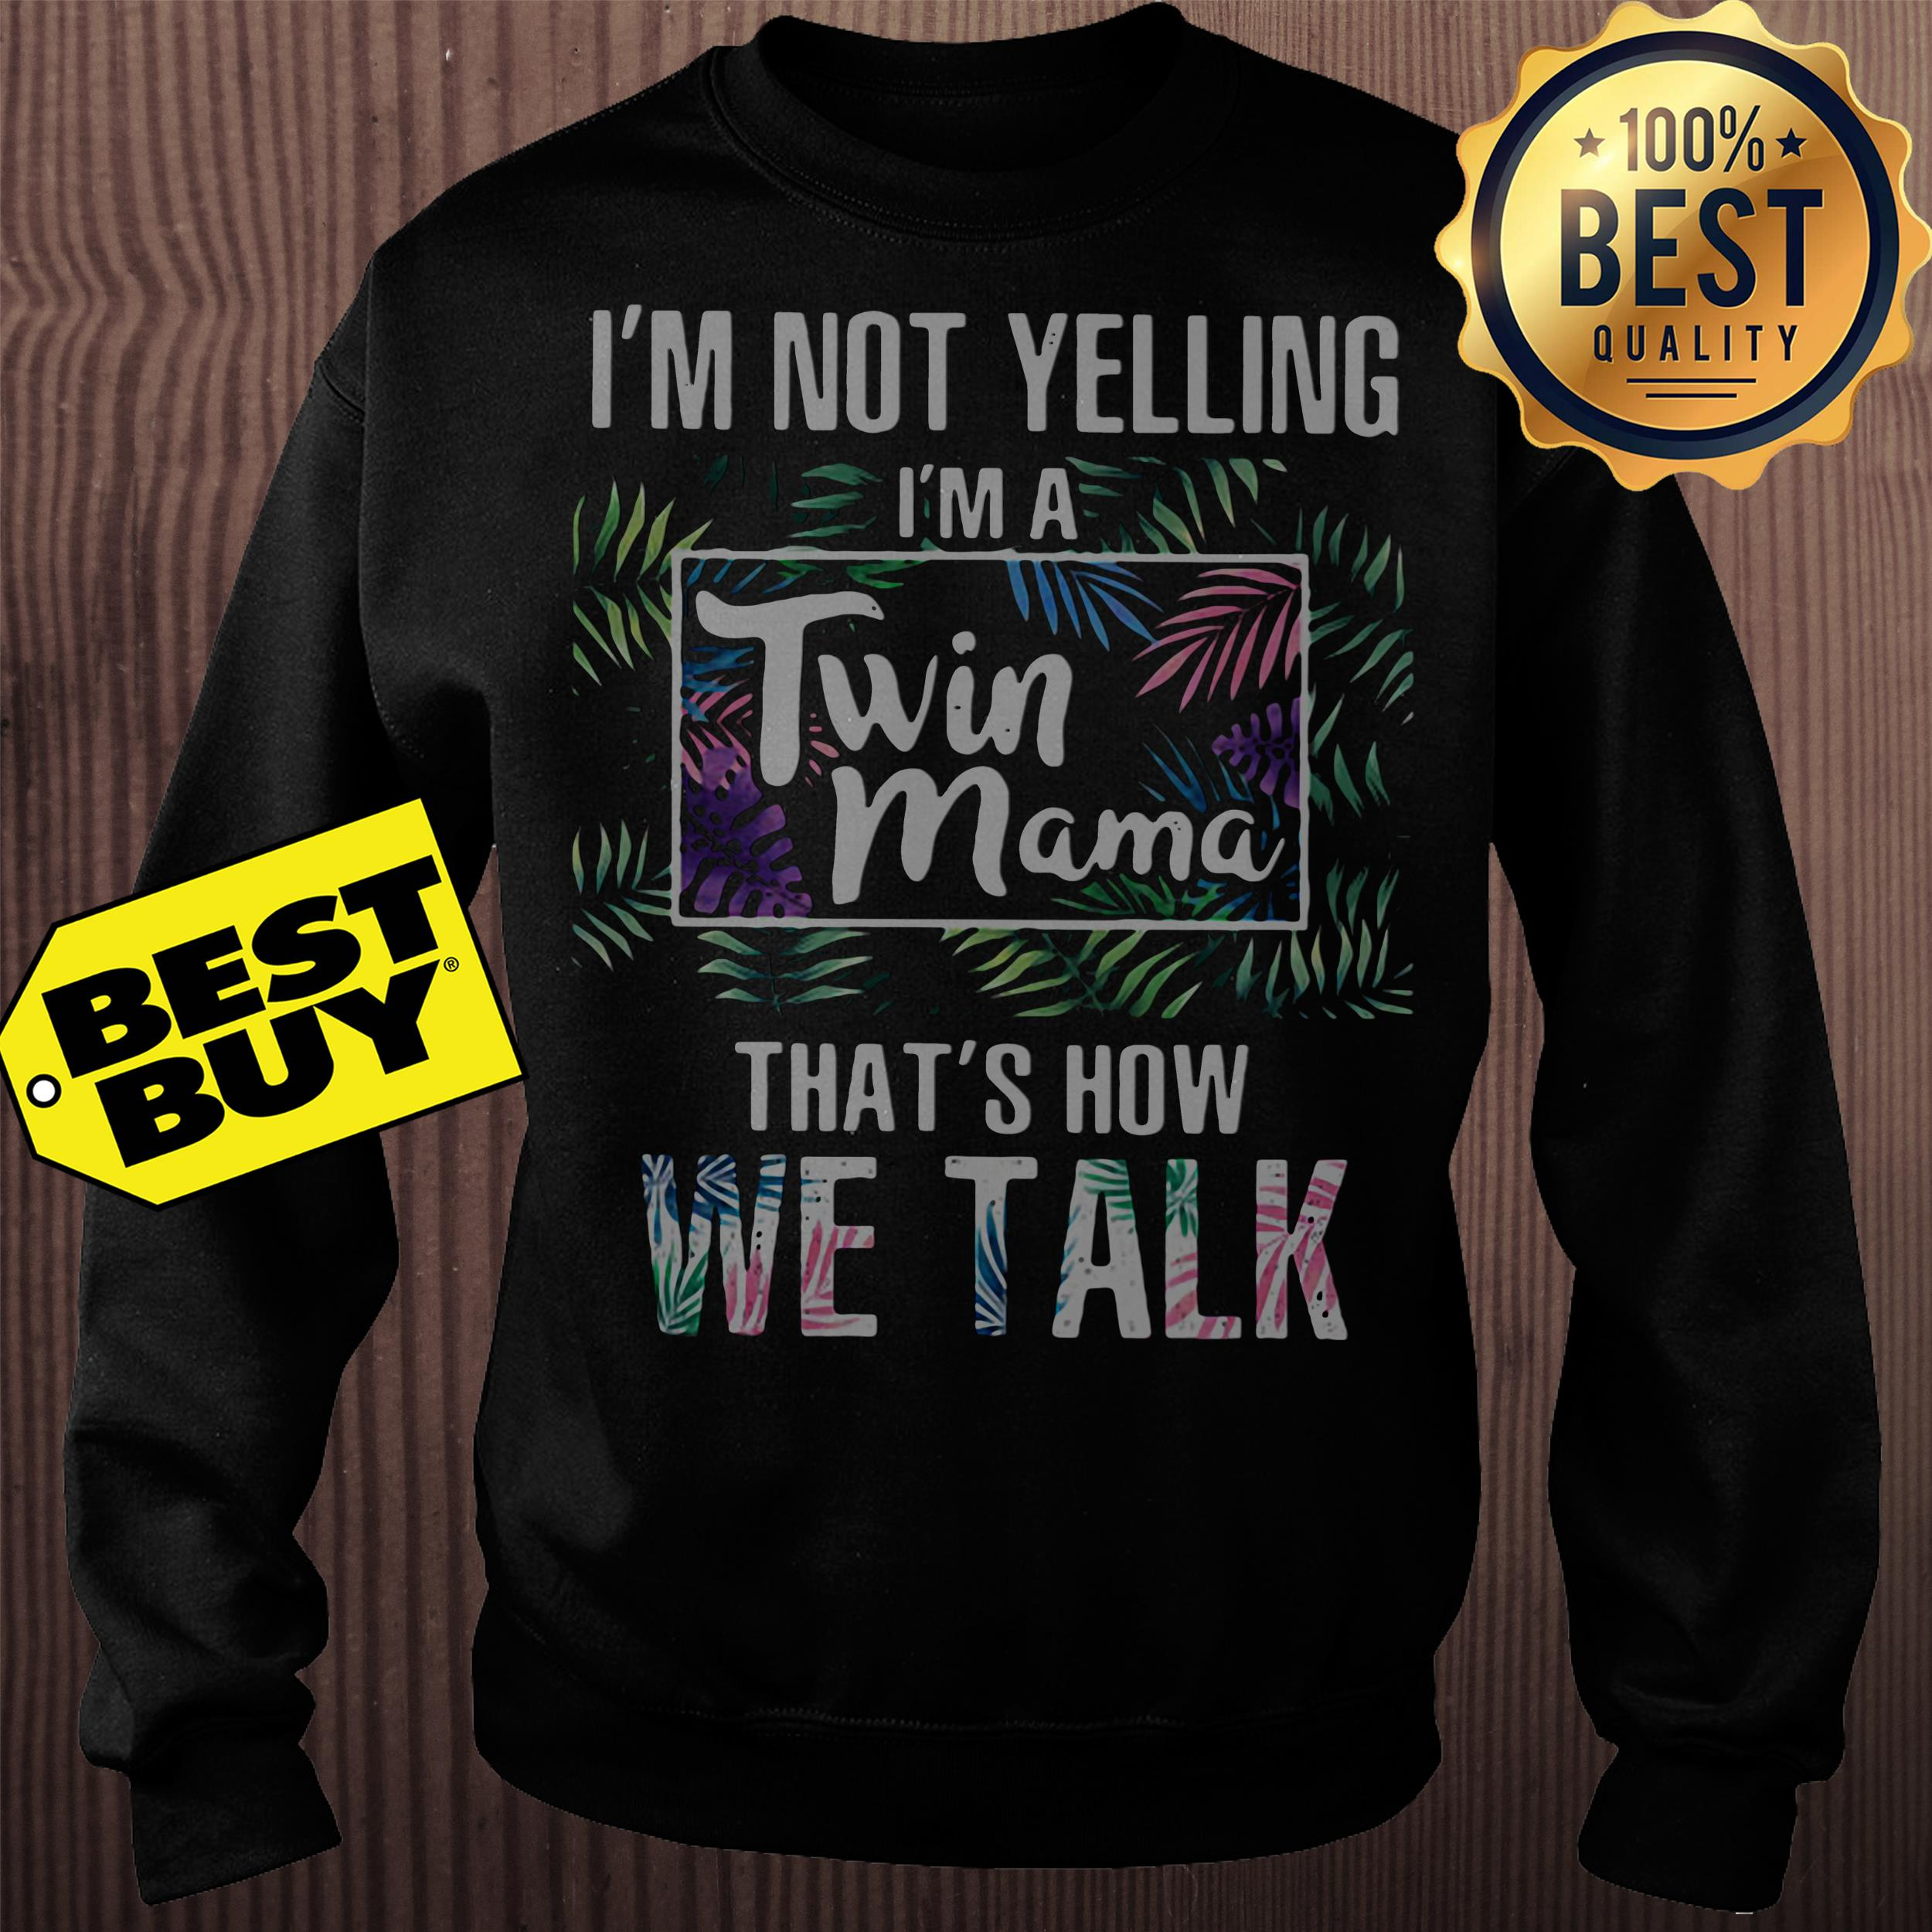 I'm not yelling I'm a twin mama that's how we talk sweatshirt